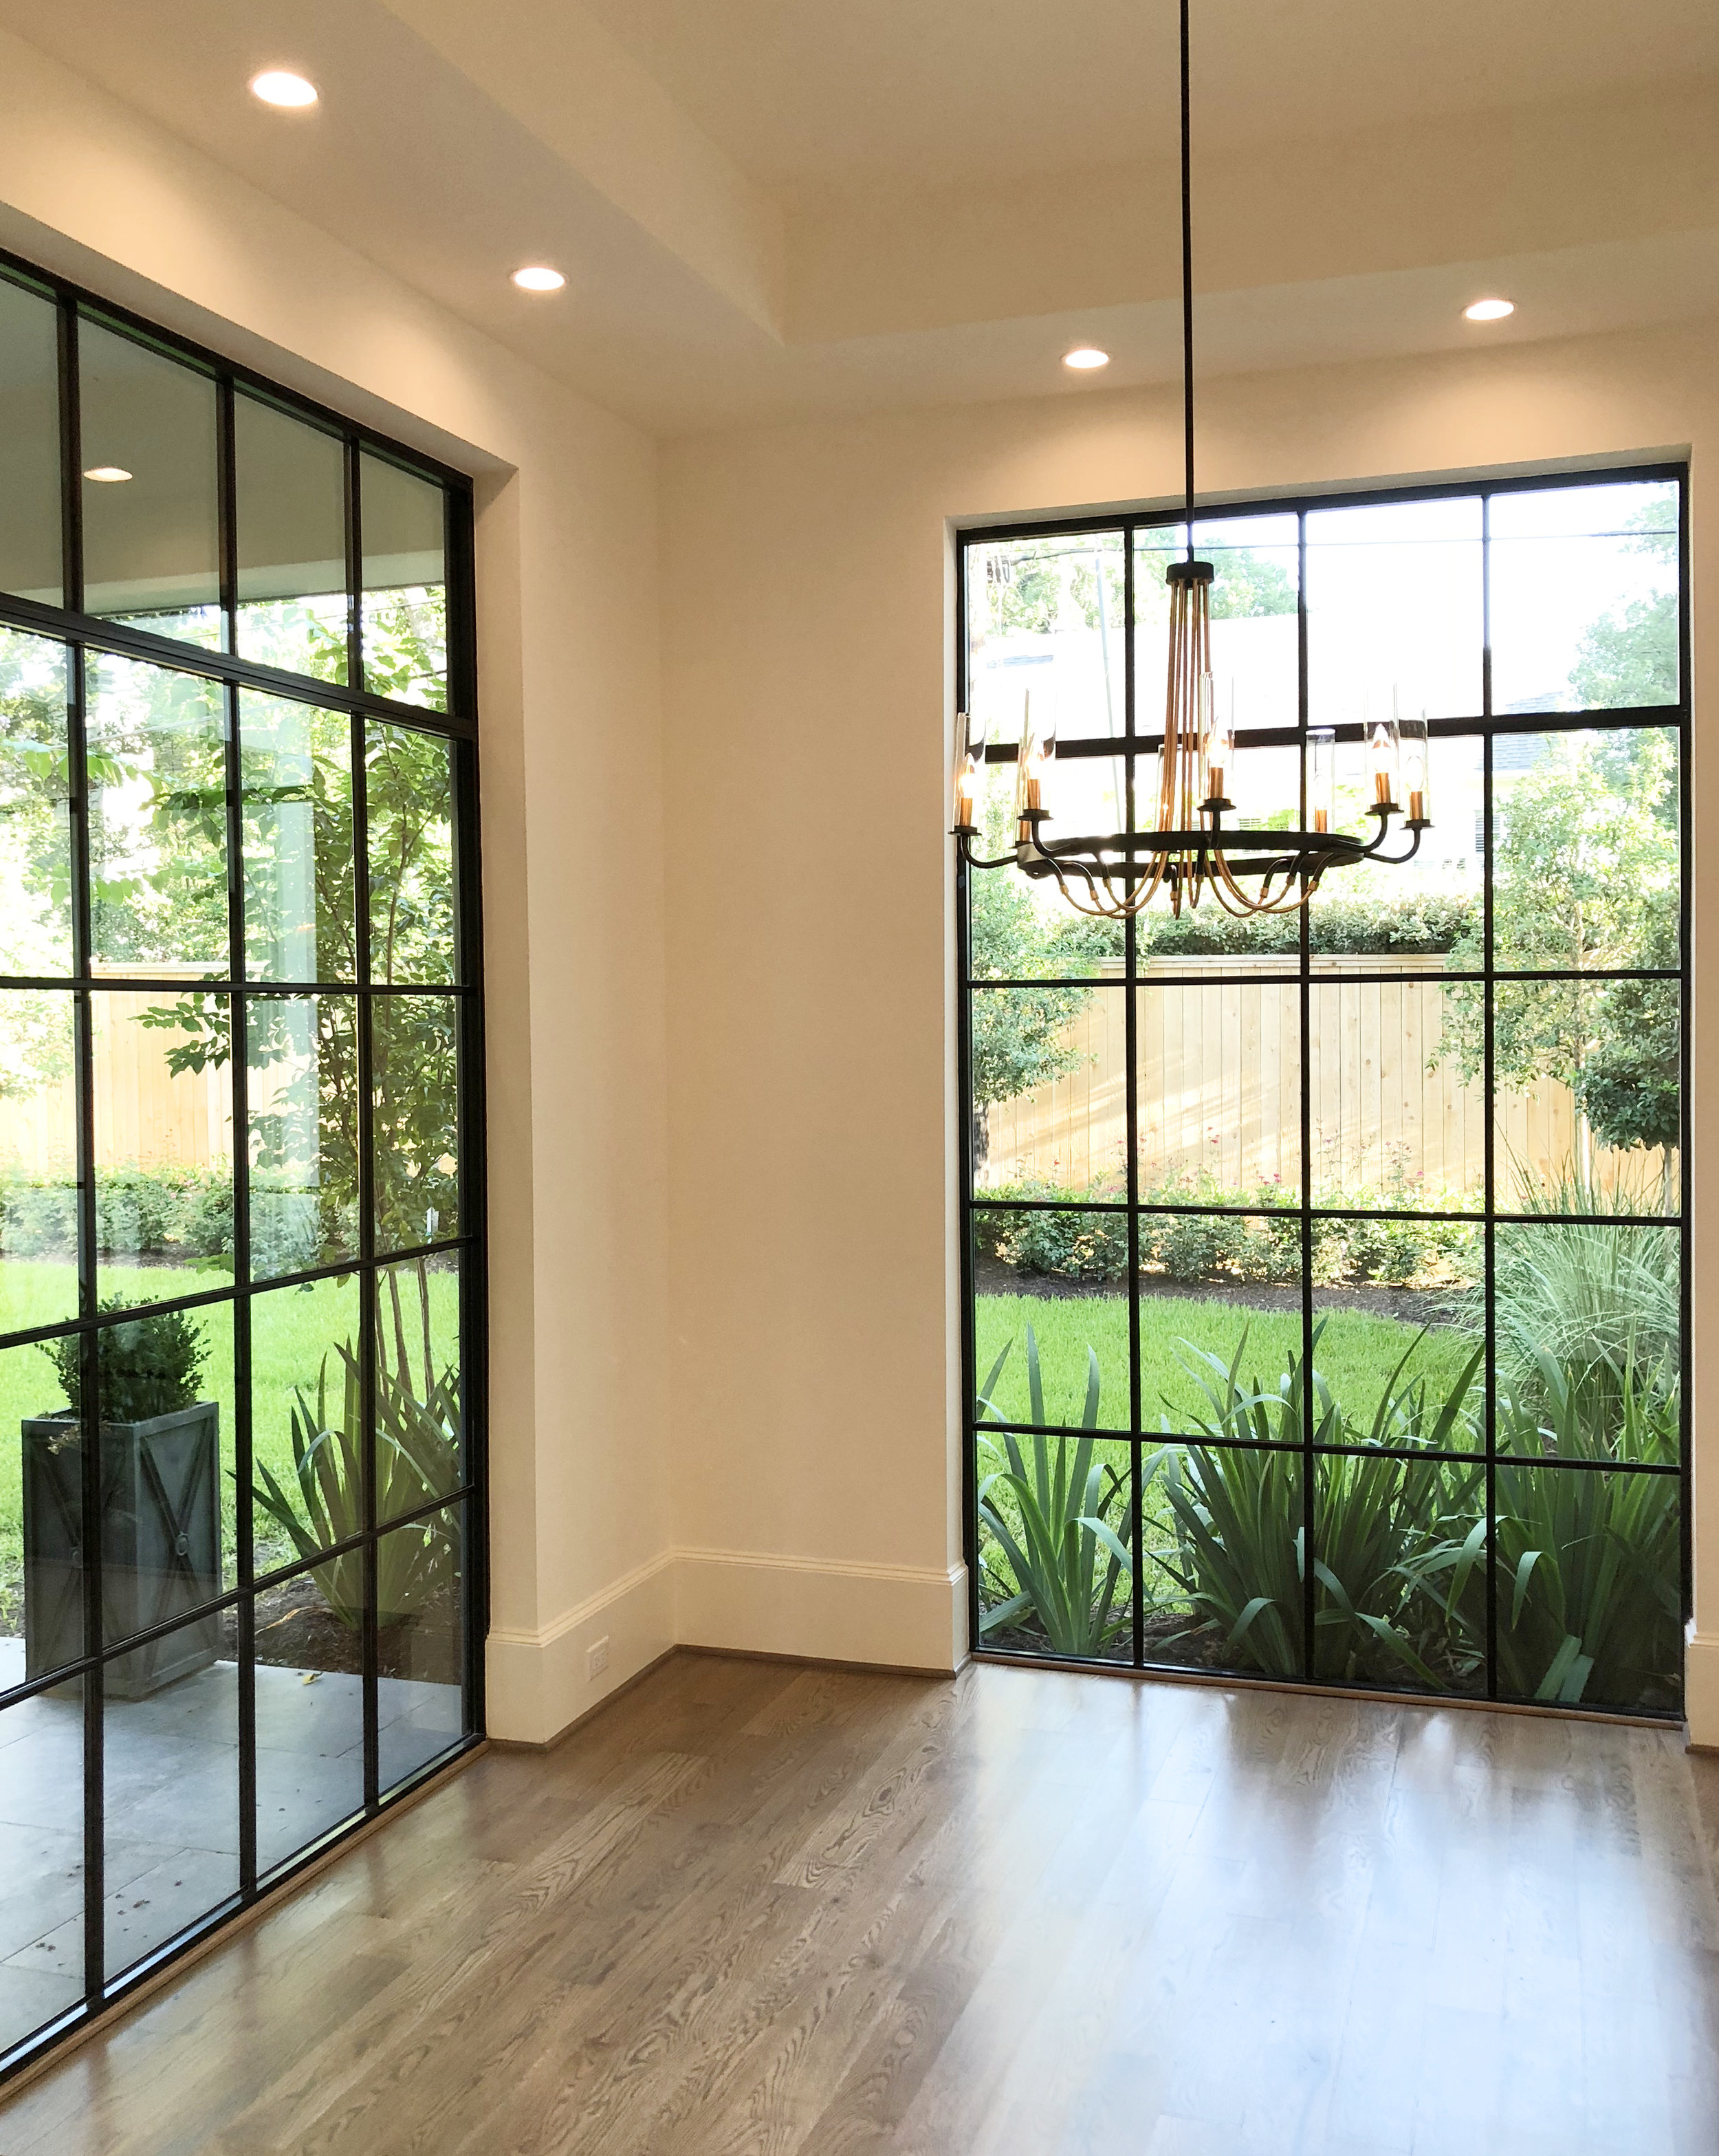 Breakfast room in Houston's River Oaks with floor to ceiling steel windows designed by Berlin based interior designer Jamie House and built by CM Batts Developers. Jamie House Design